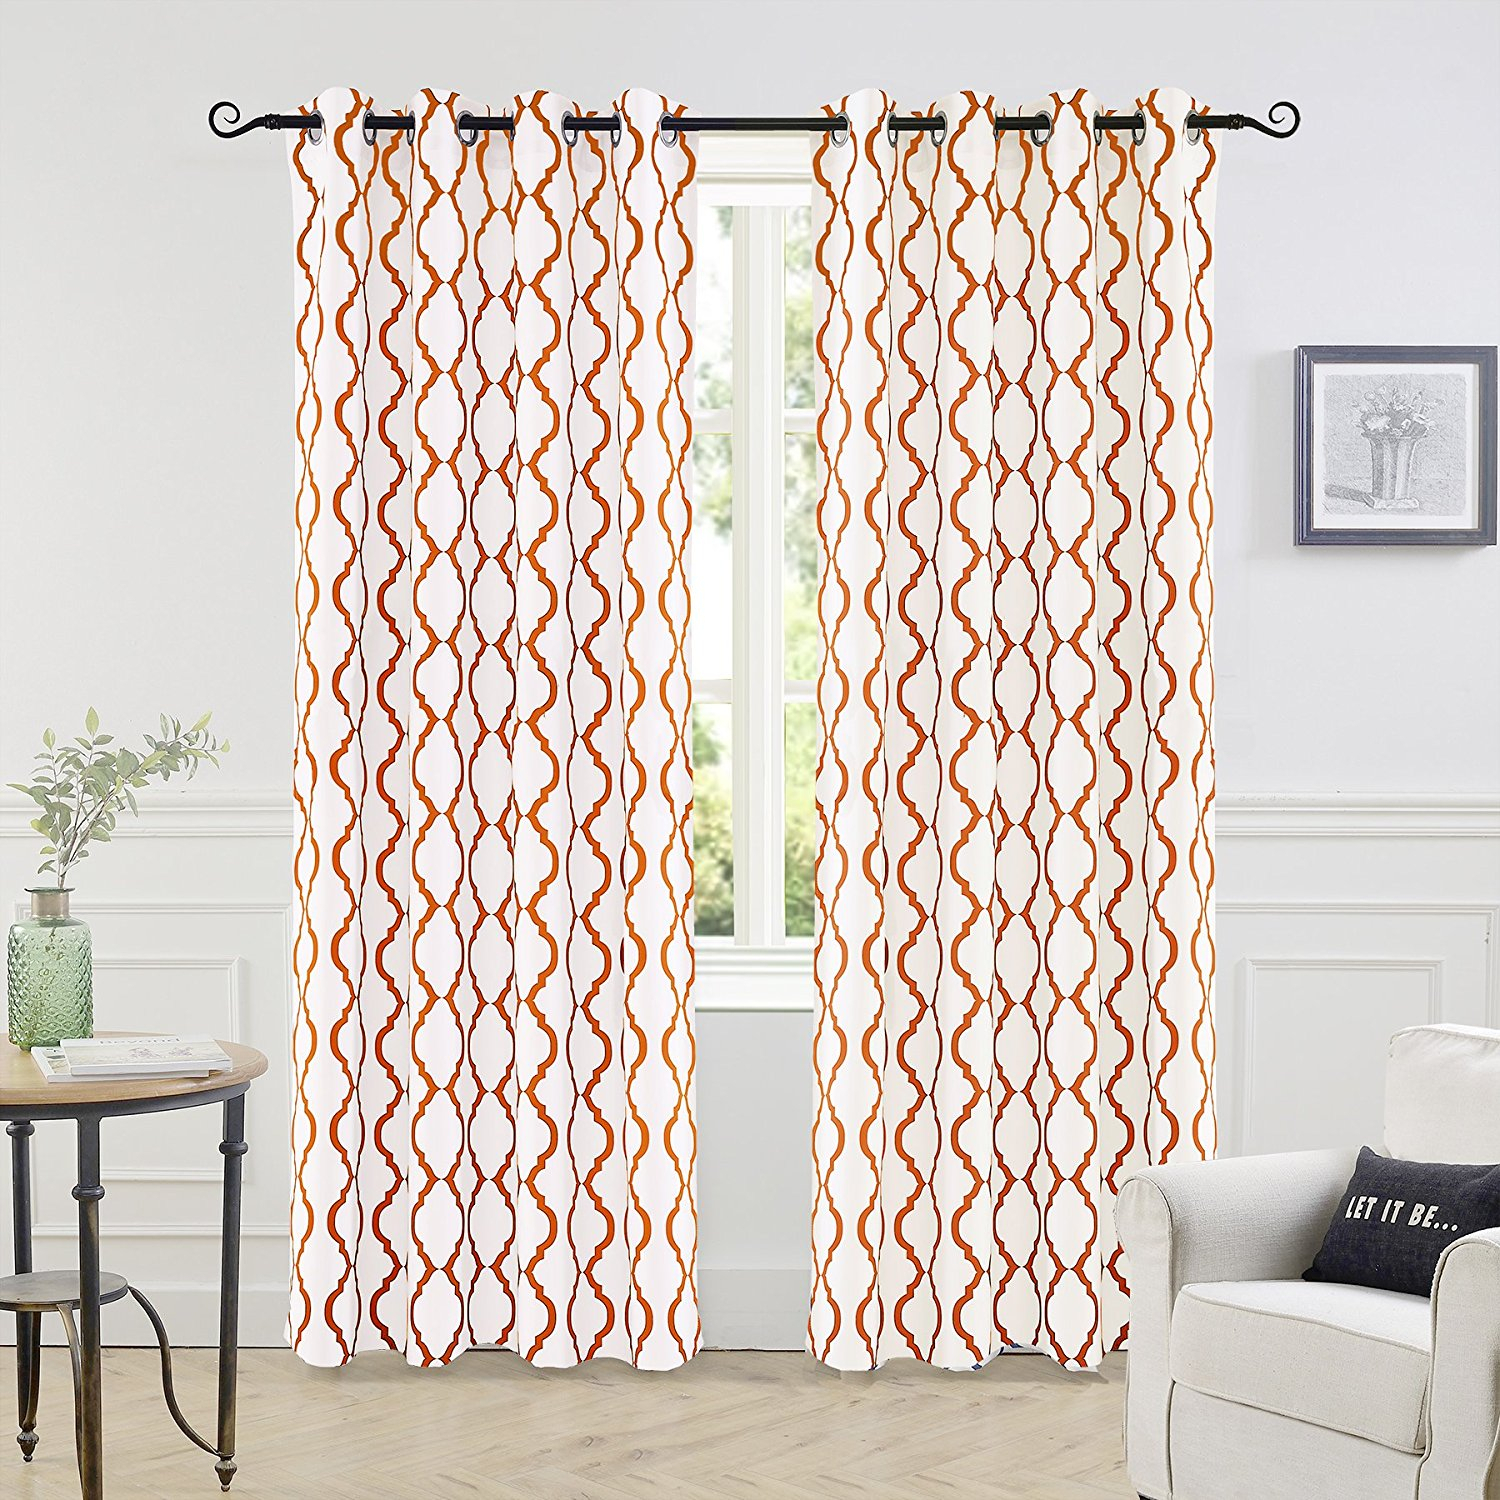 "Driftaway Geovany Room Darkening/thermal Insulated Grommet Window Curtains, Moroccan Geometric Pattern, 2 Of 52""x84"", Sienna Within Edward Moroccan Pattern Room Darkening Curtain Panel Pairs (View 16 of 20)"